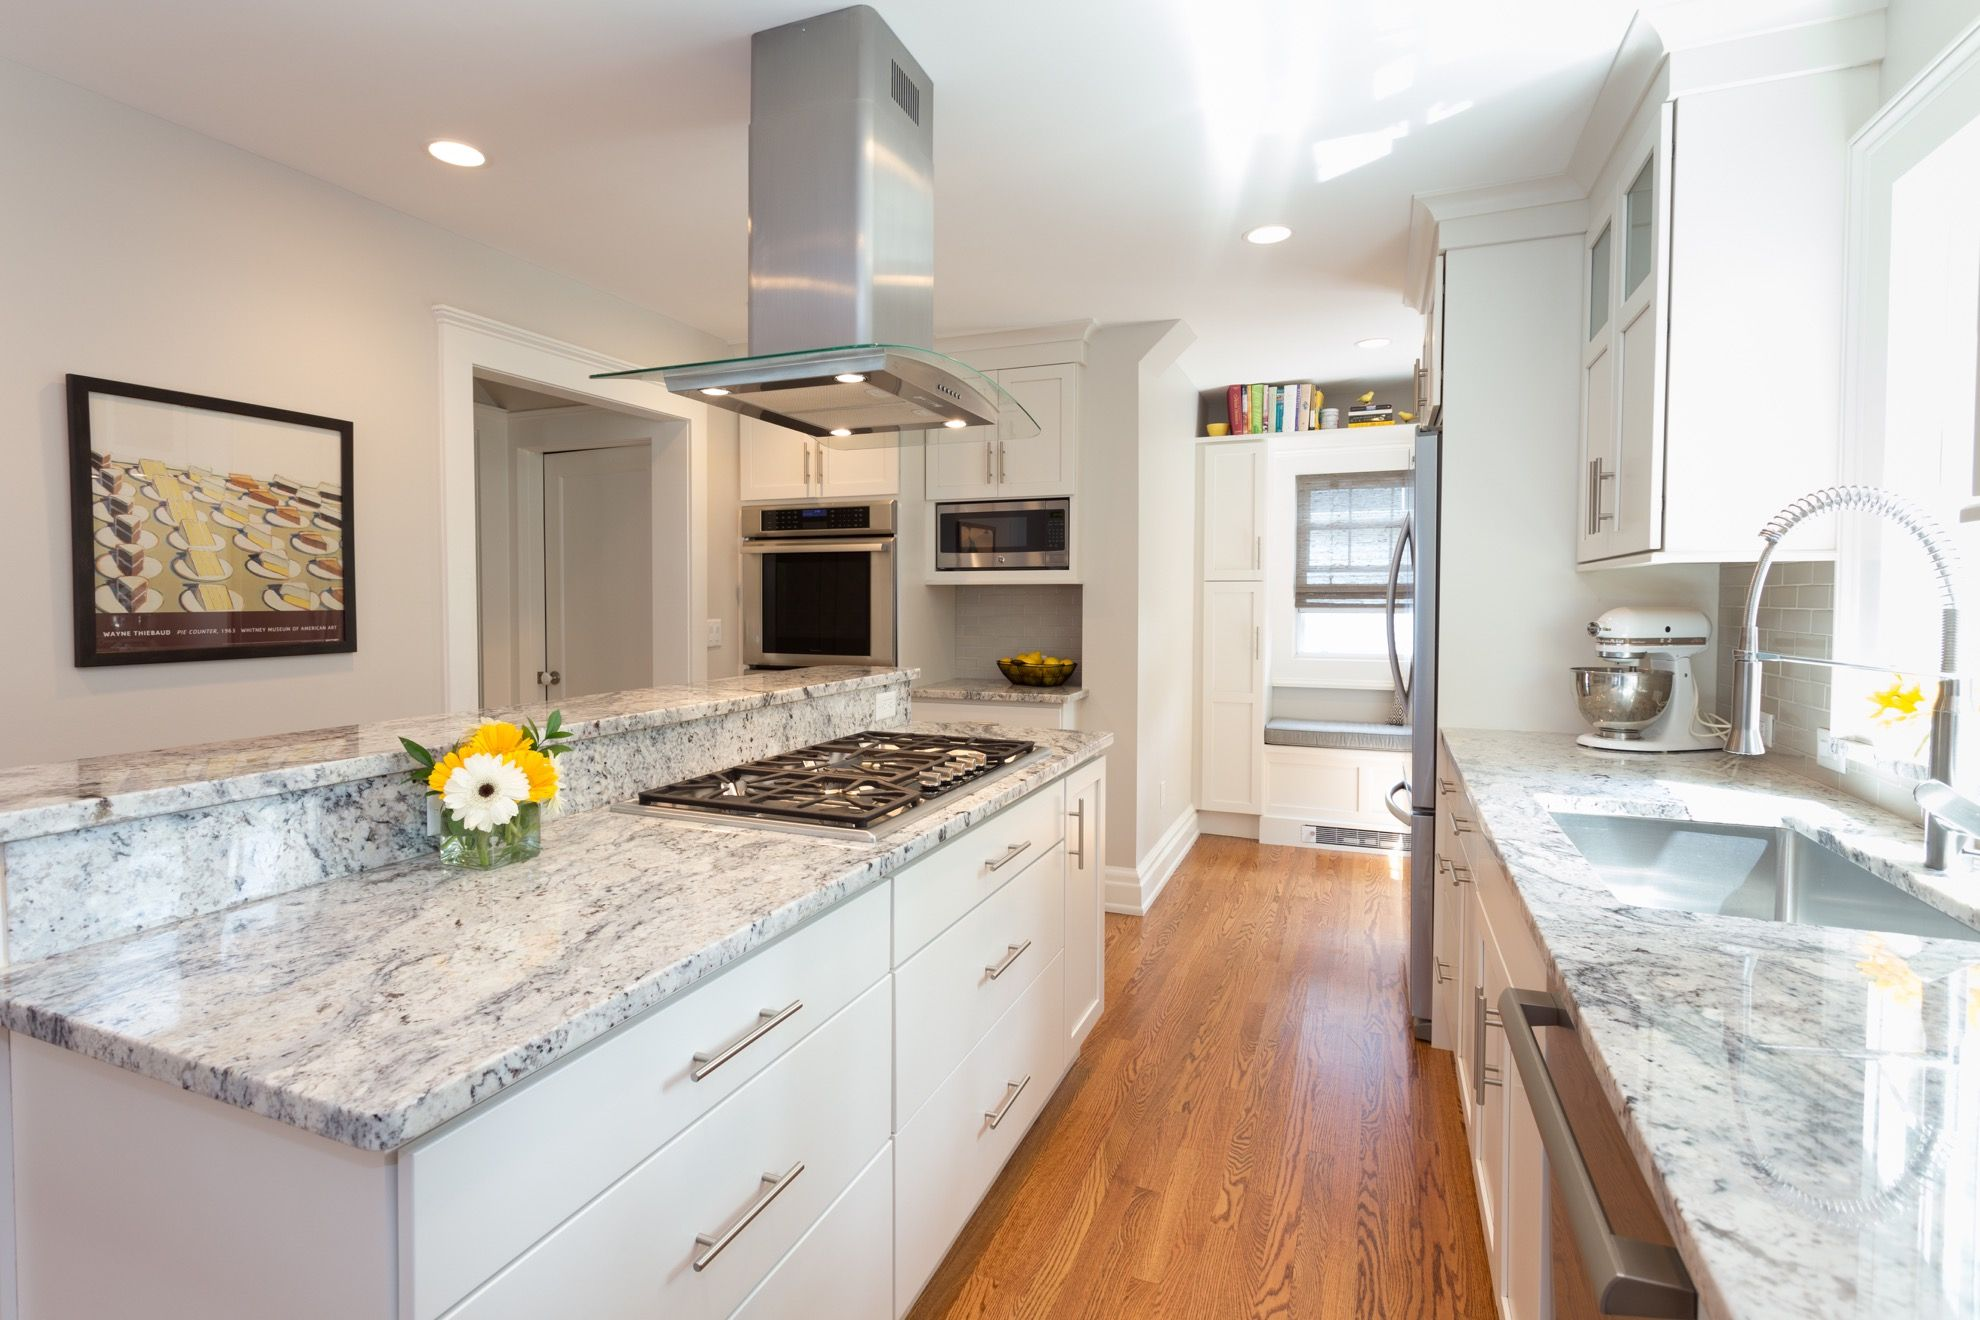 Kitchen remodeling by kitchen intuitions mohamed samir in